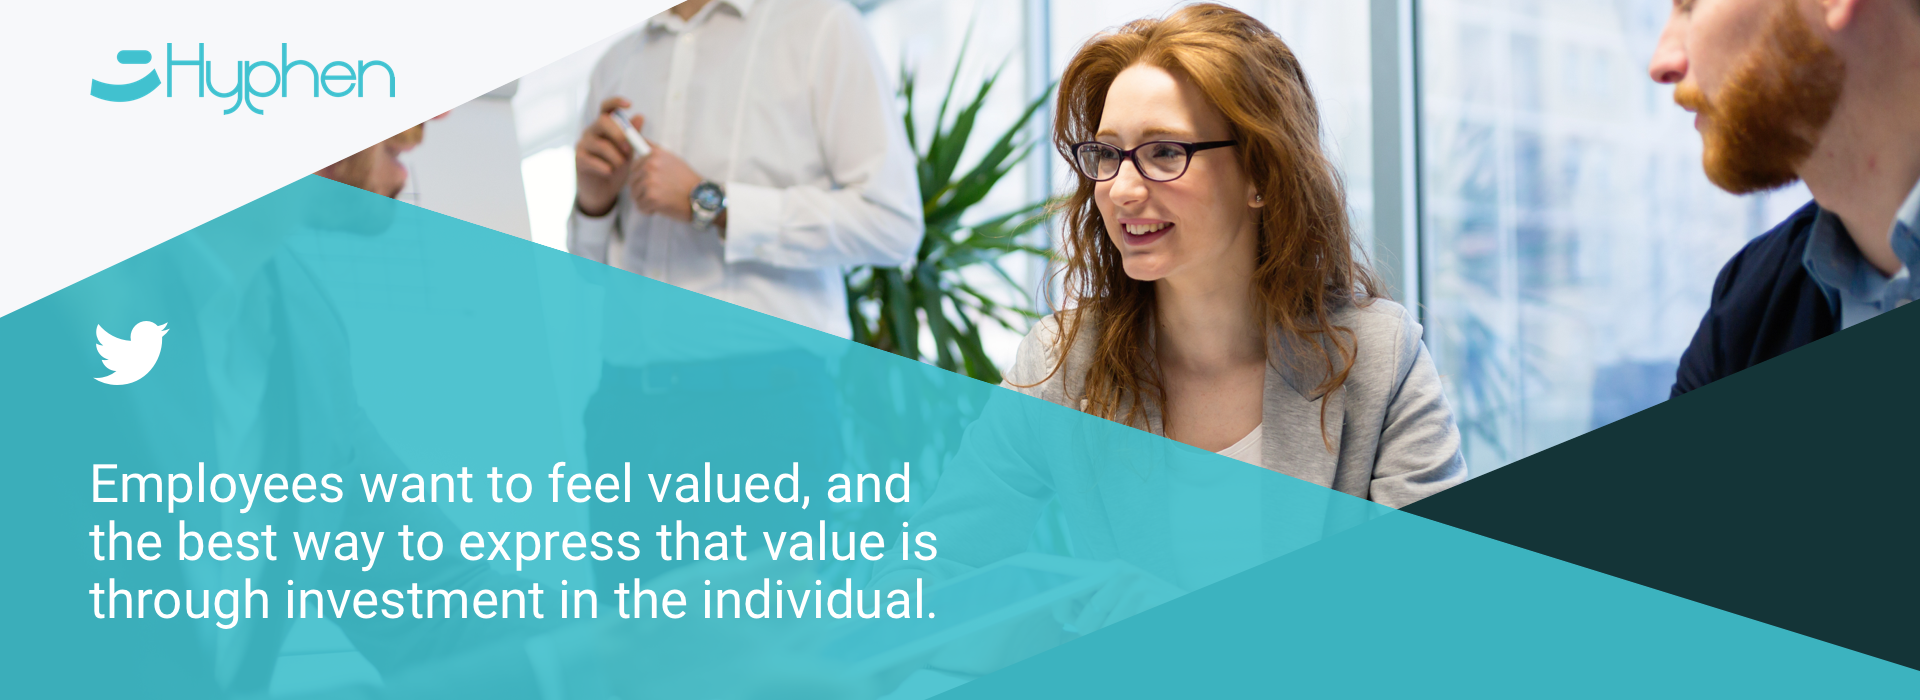 """""""Employees want to feel valued, and the best way to express that value is through investment in the individual,"""""""